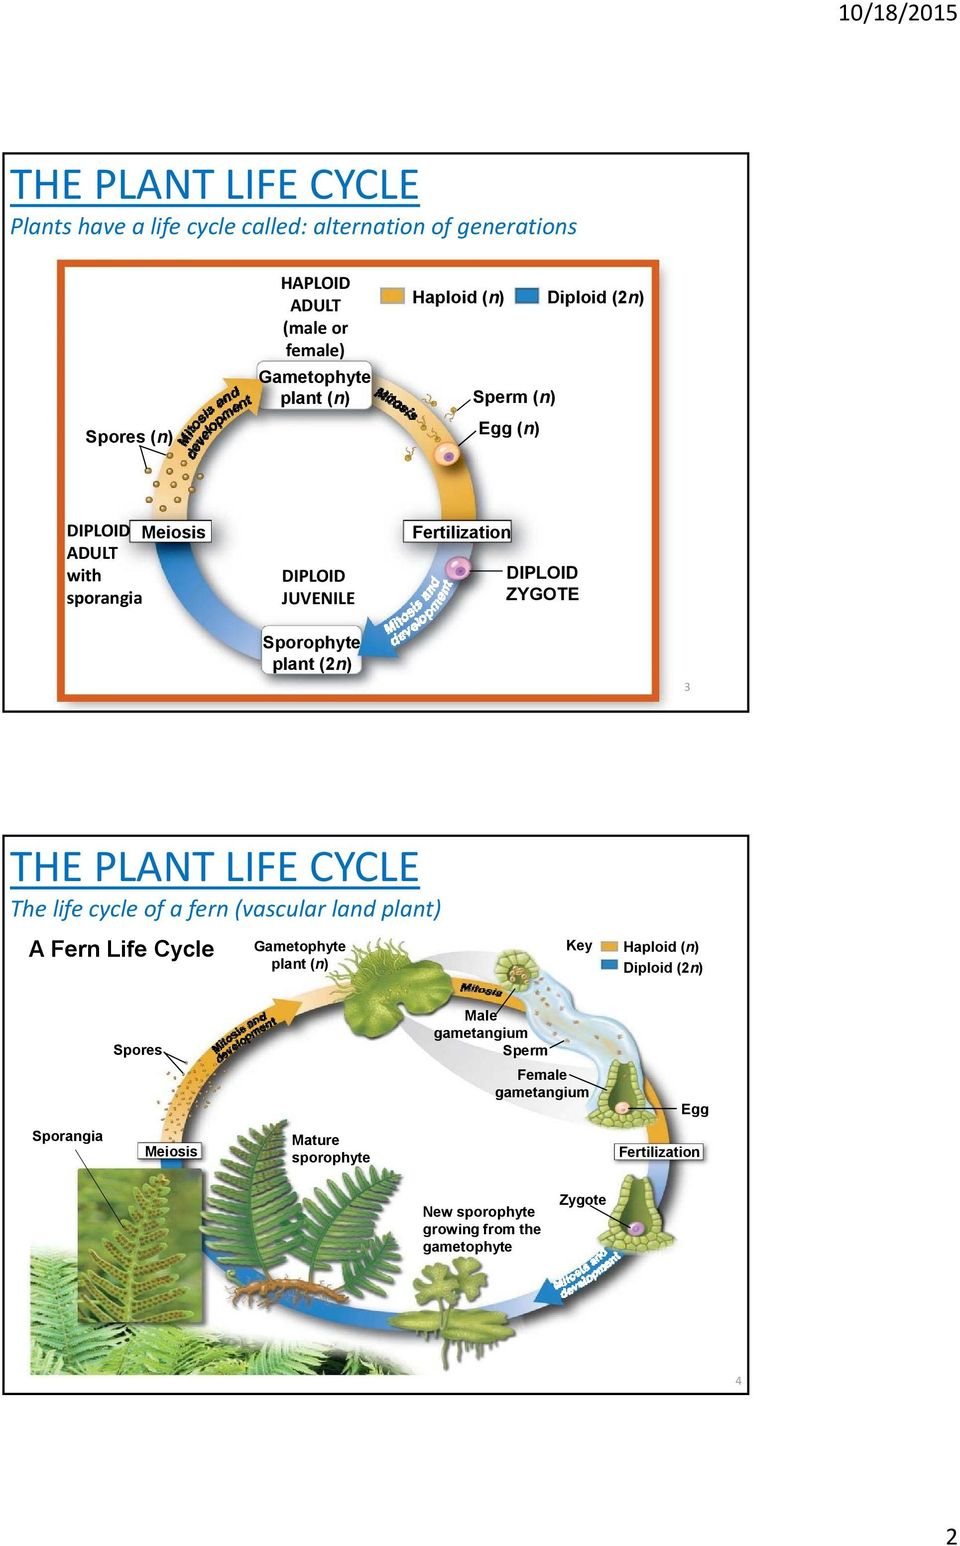 3 THE PLANT LIFE CYCLE The life cycle of a fern (vascular land plant) A Fern Life Cycle Gametophyte plant (n) Key Haploid (n) Diploid (2n) Spores